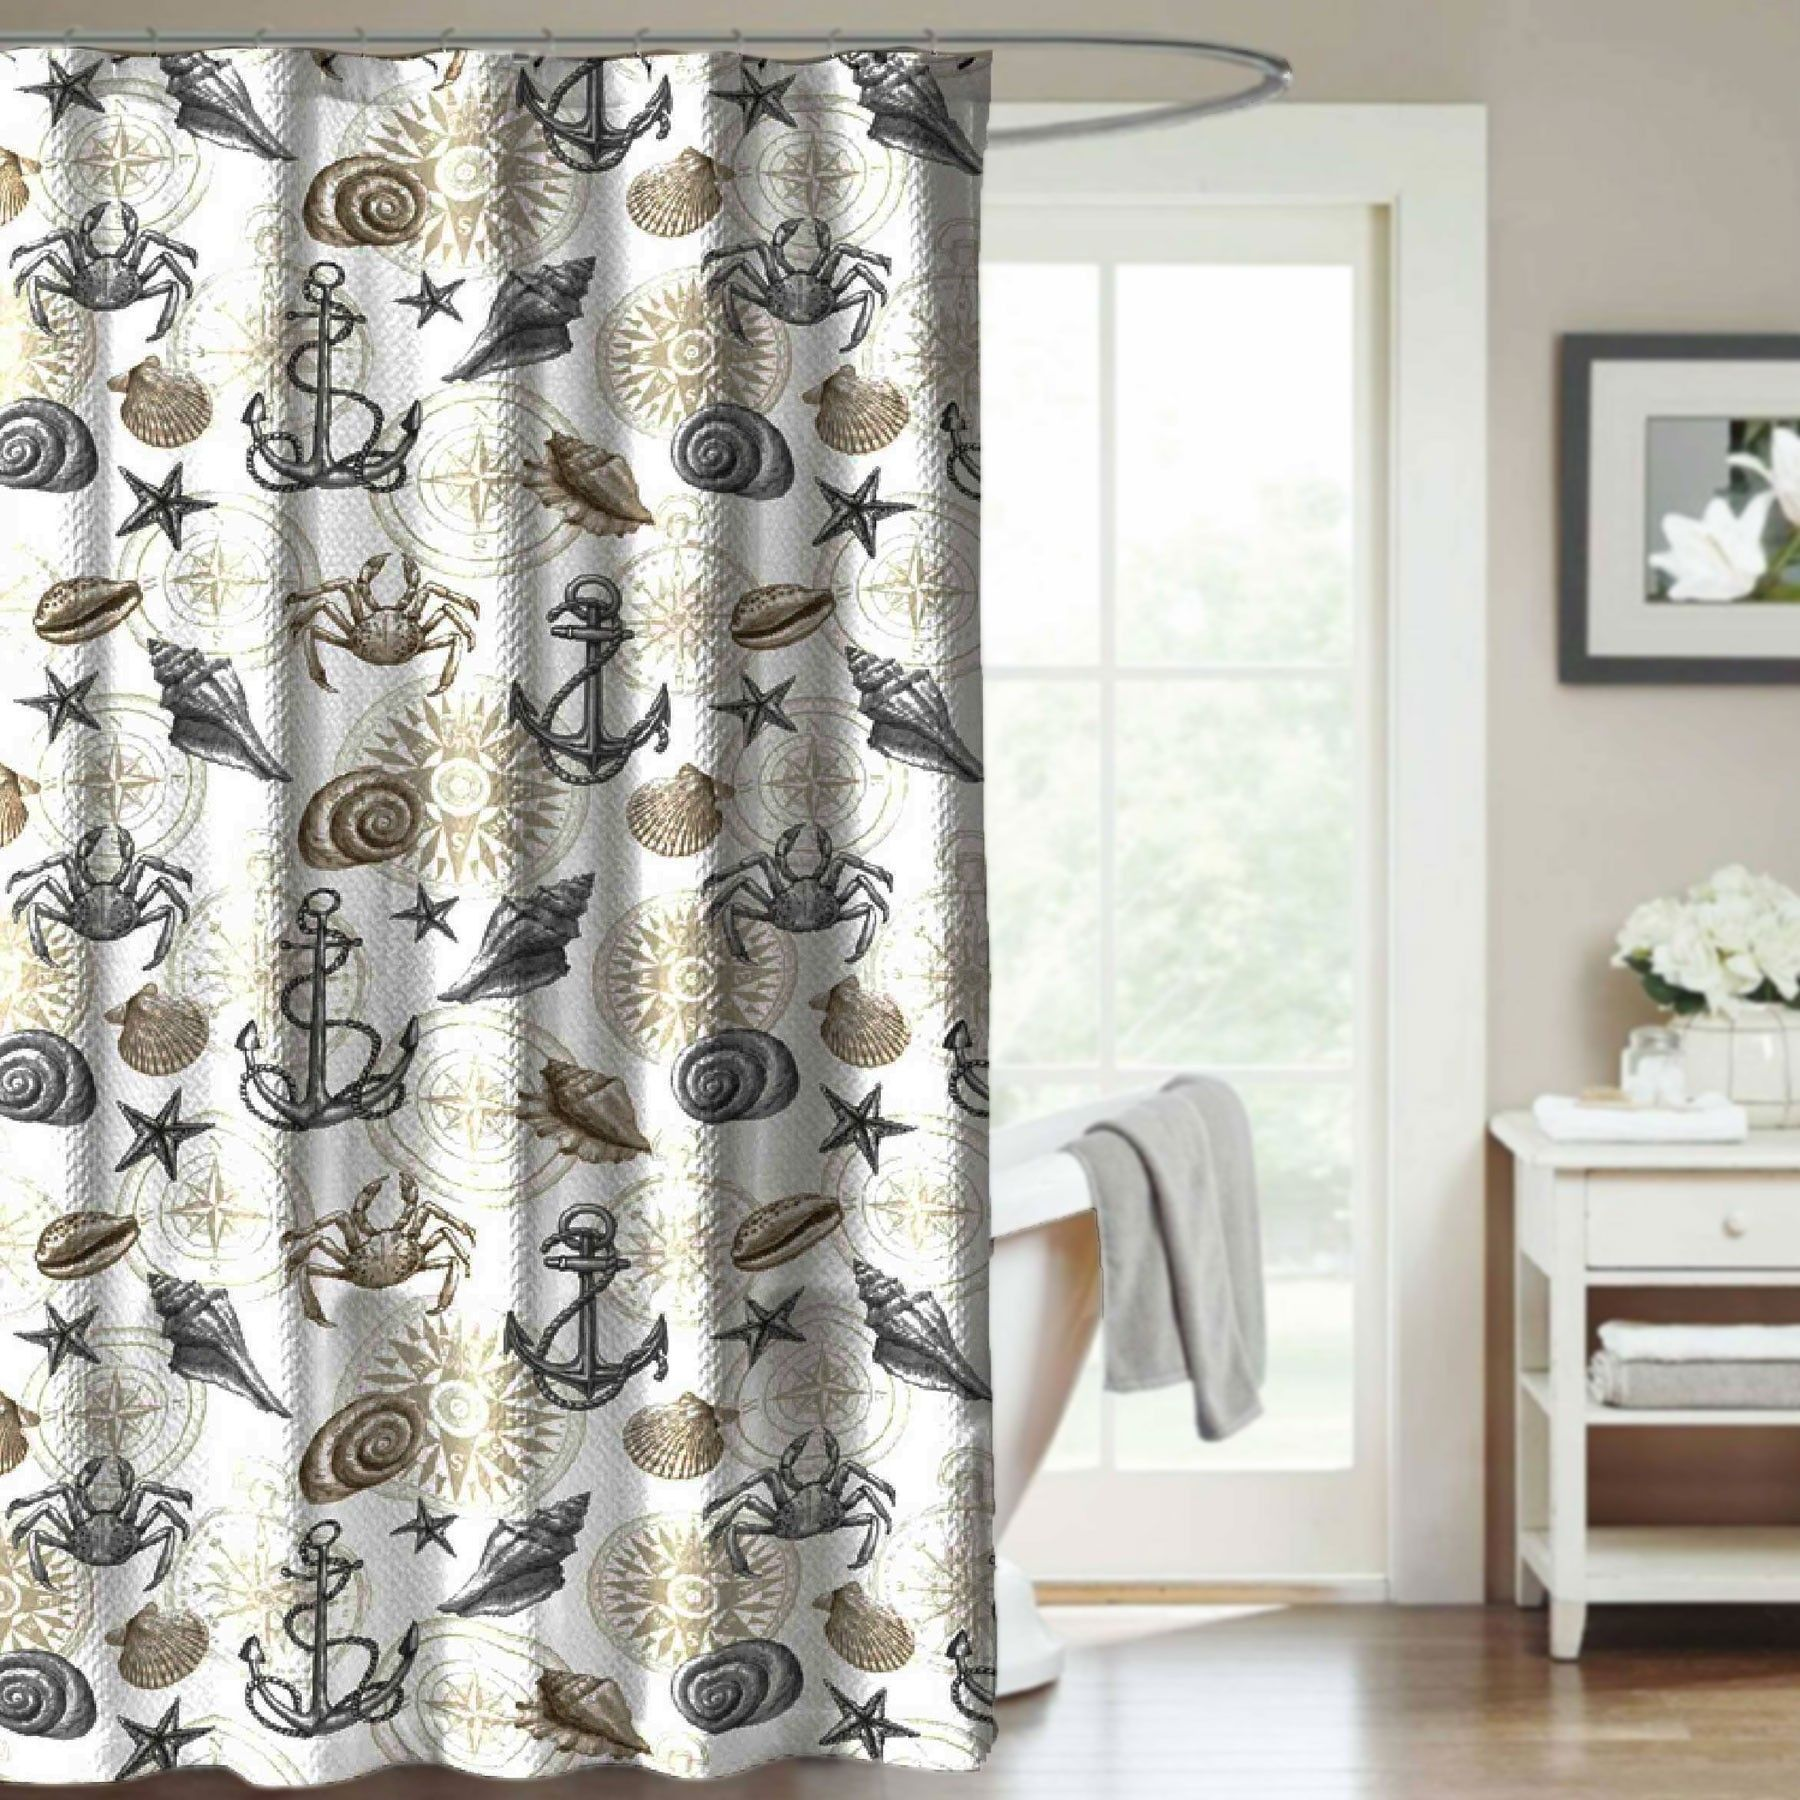 Crest Home St Croix Fabric Shower Curtain Gray And Taupe Coastal